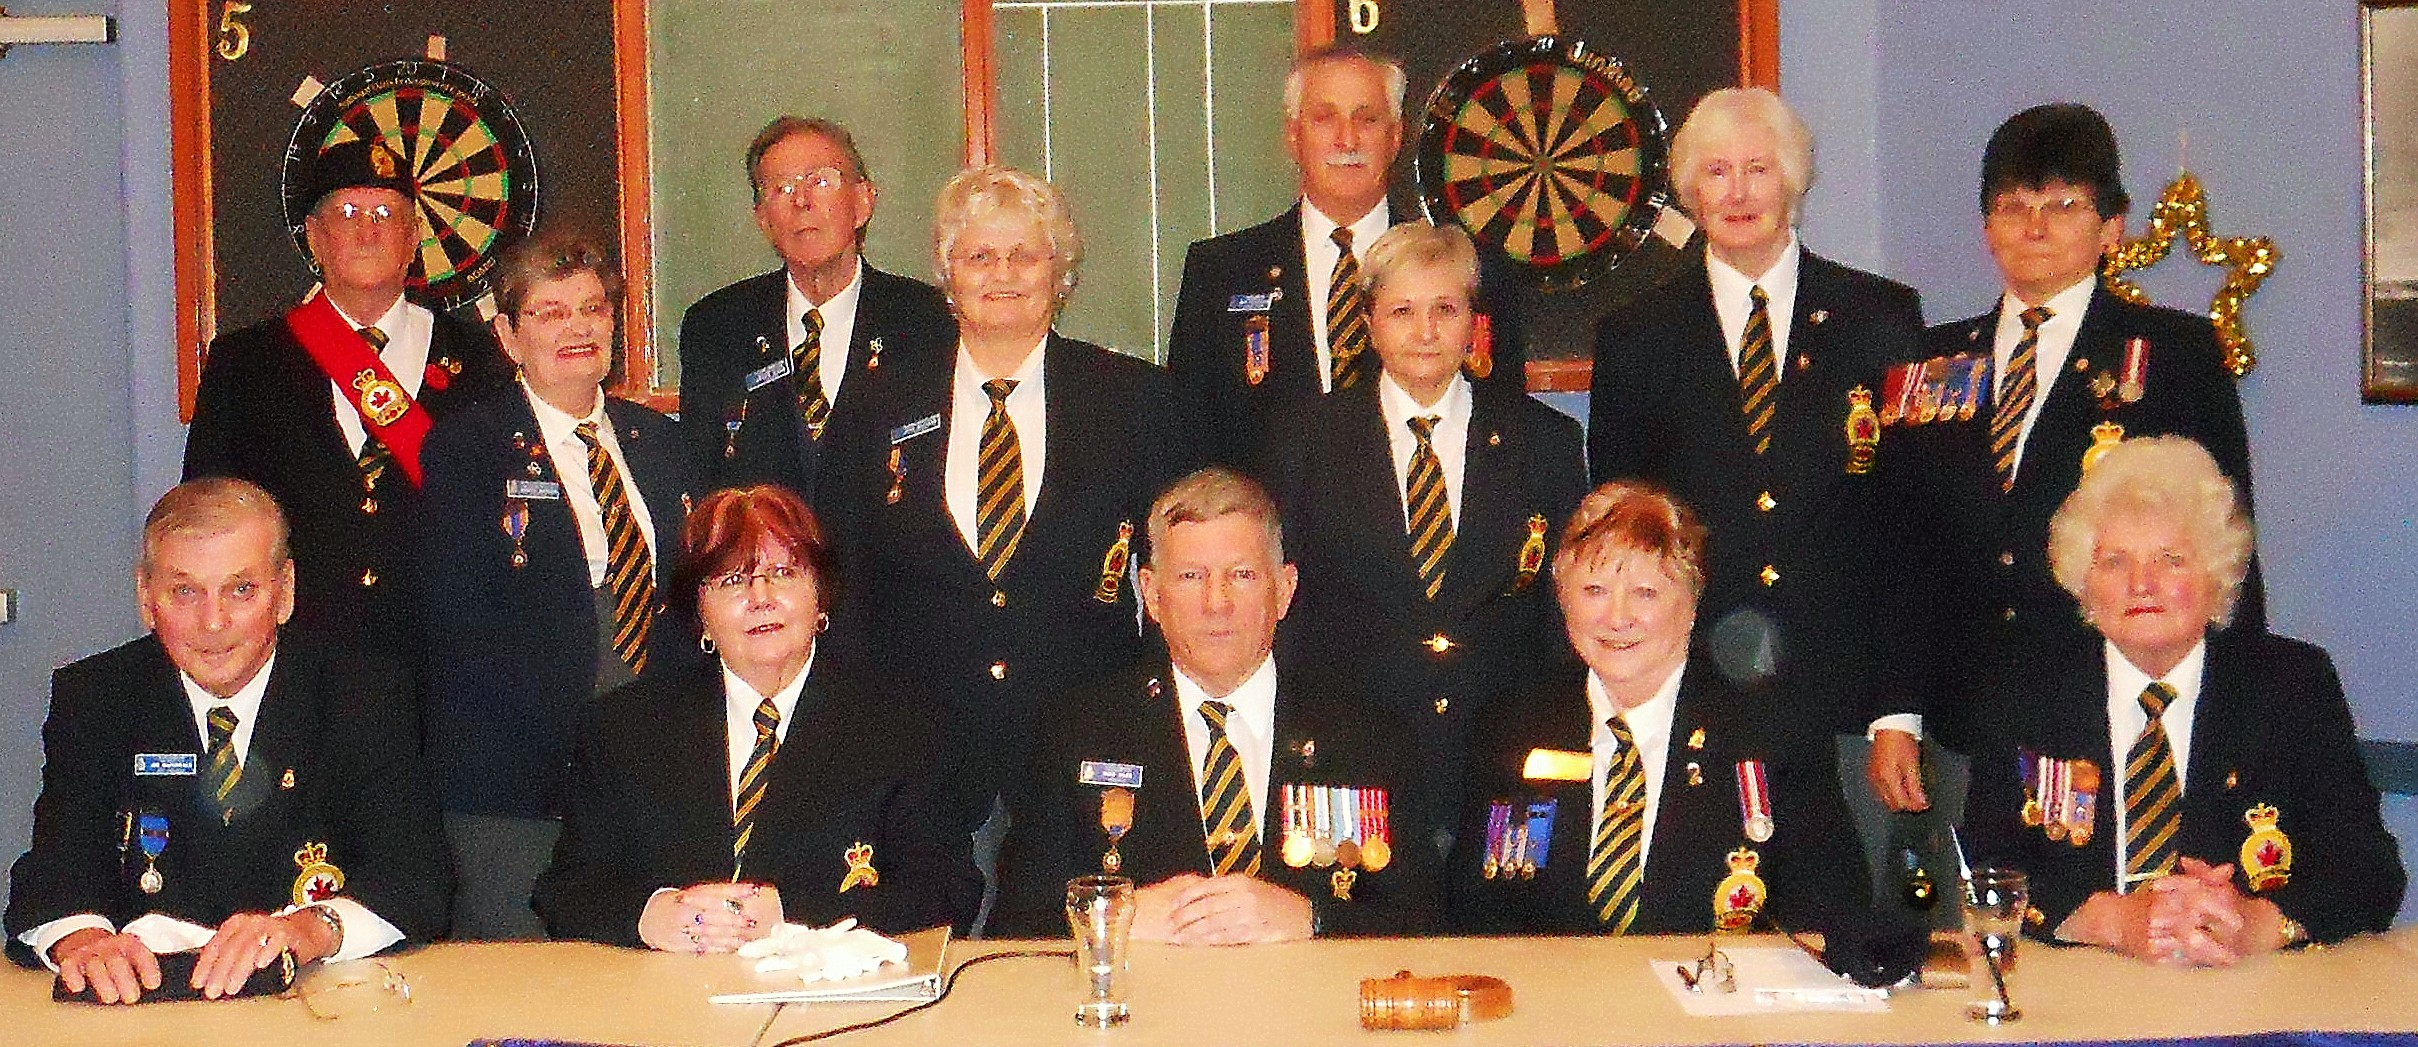 BRANCH 88 MAPLE RIDGE 2015 EXECUTIVE Back Row: Sgt.at Arms Tom Gardiner, Peter Kane, John Vanderelst, Kathleen O'Conner Centre Row: Annette Davidson, Judy Ballard, Penny Ferguson, Margaret Kury Front Row: Jim MacDonald, Lynda Cratty, Mike Ward, Zone Commander Irene Brown, Claire Pratt Absent from photo: Andre Wesseling, Rev. Roland Ziprick